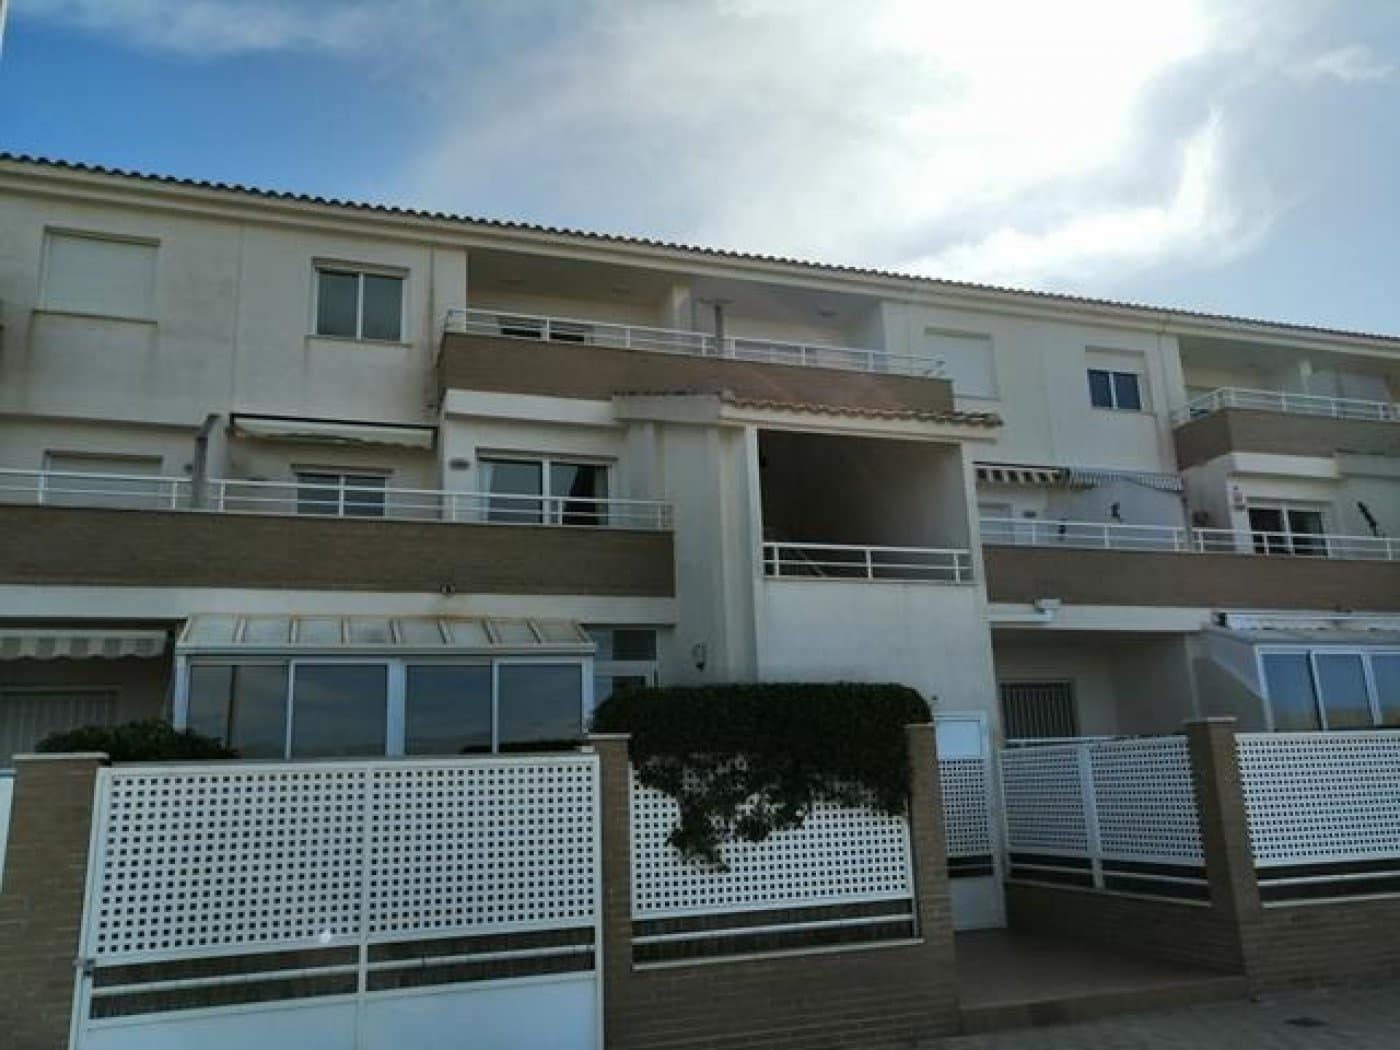 3 bedroom Penthouse for sale in San Cayetano - € 87,000 (Ref: 5113651)